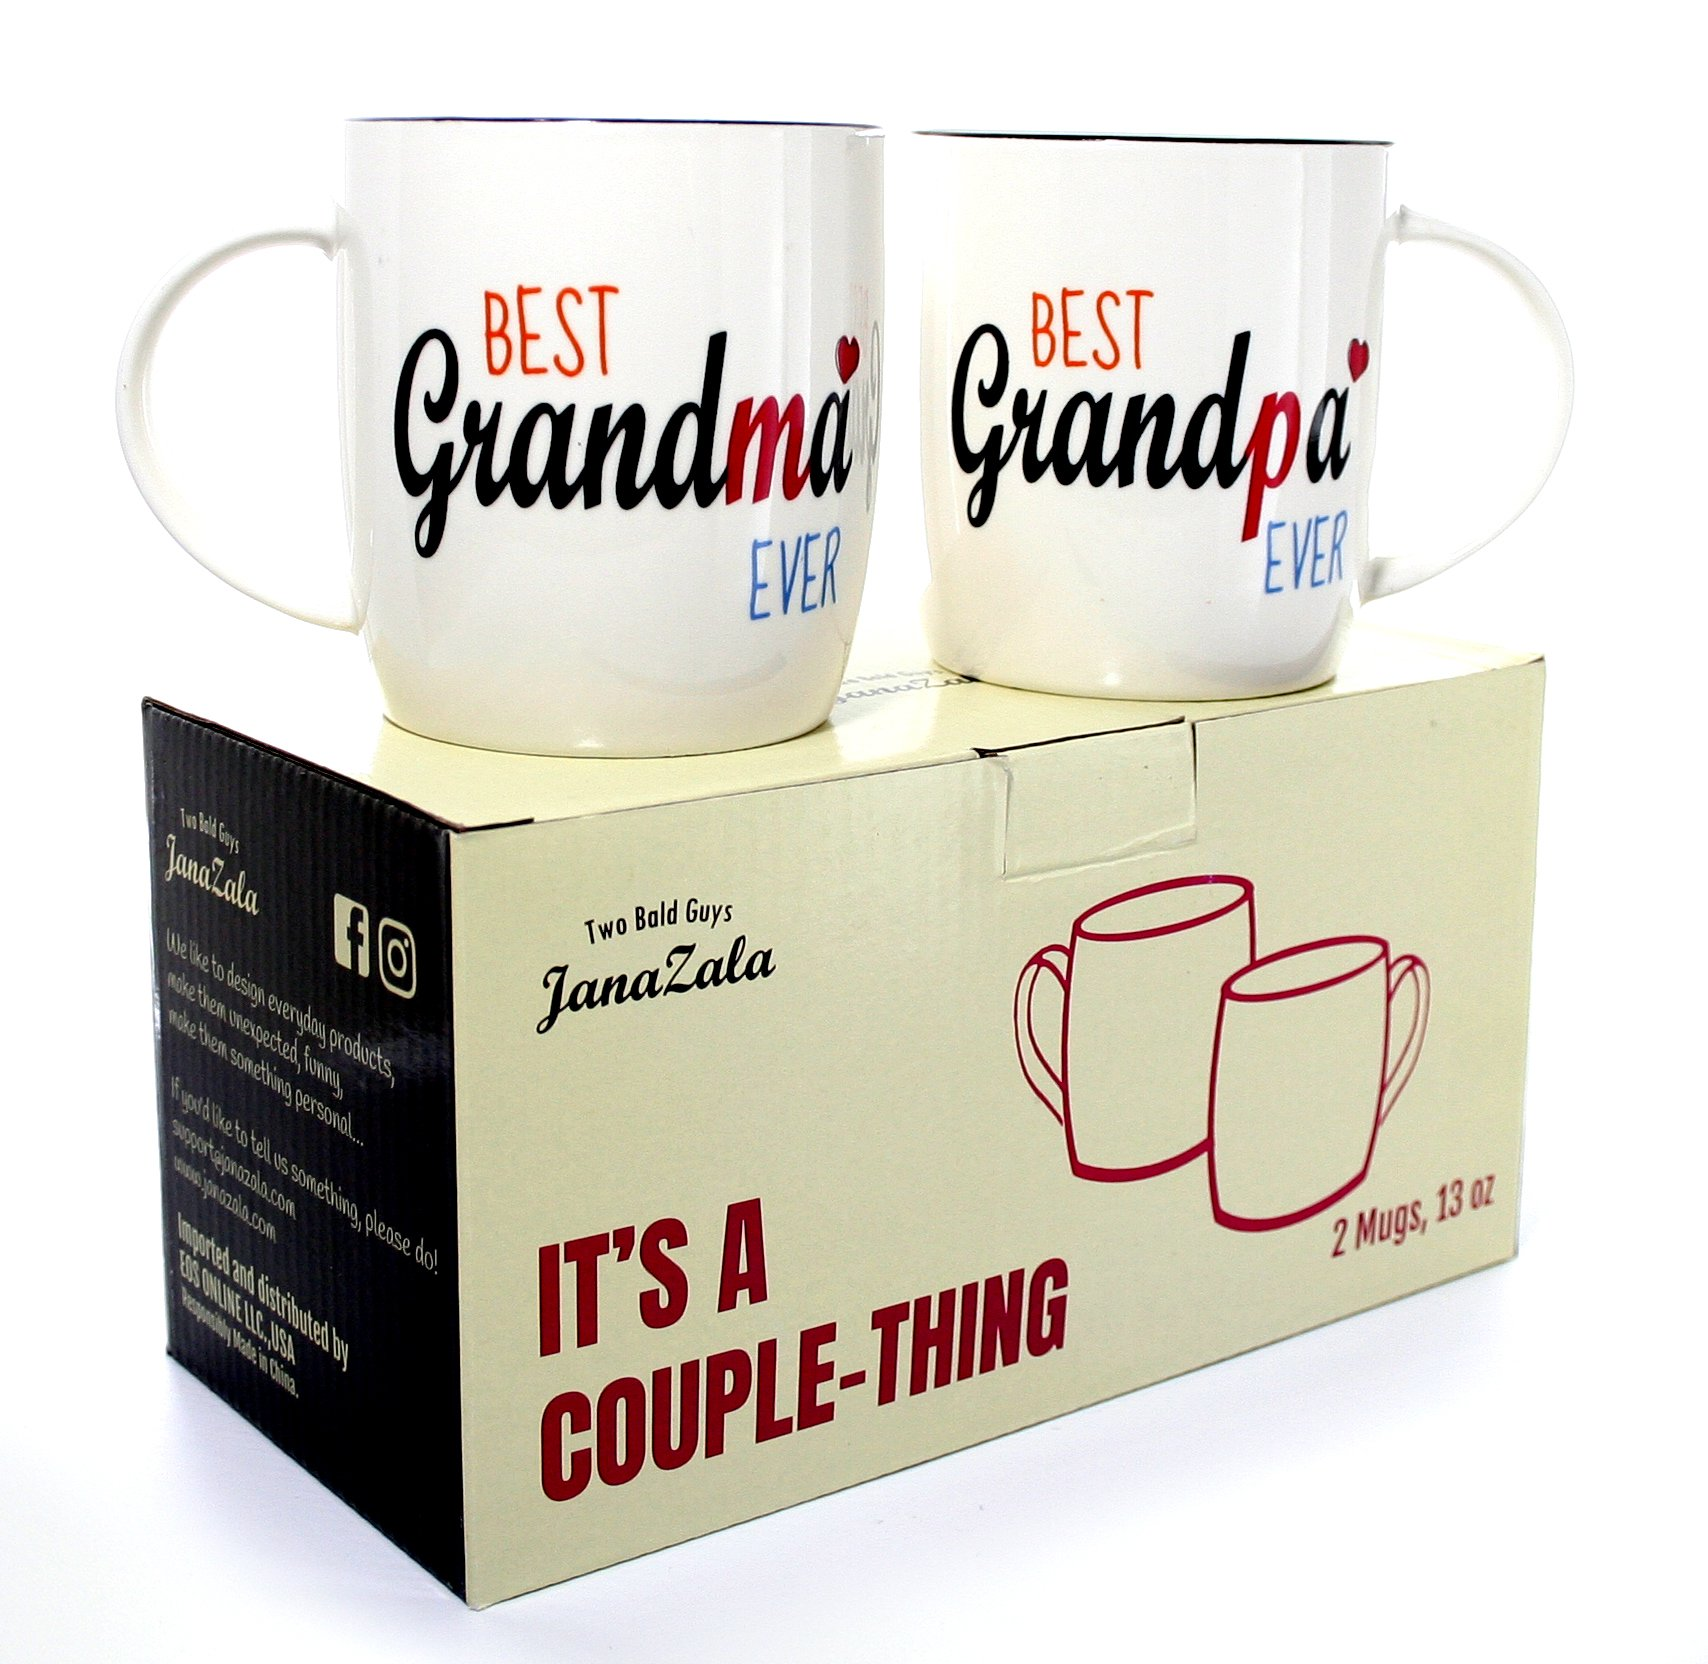 Christmas Gift for Grandparents: Amazon.com